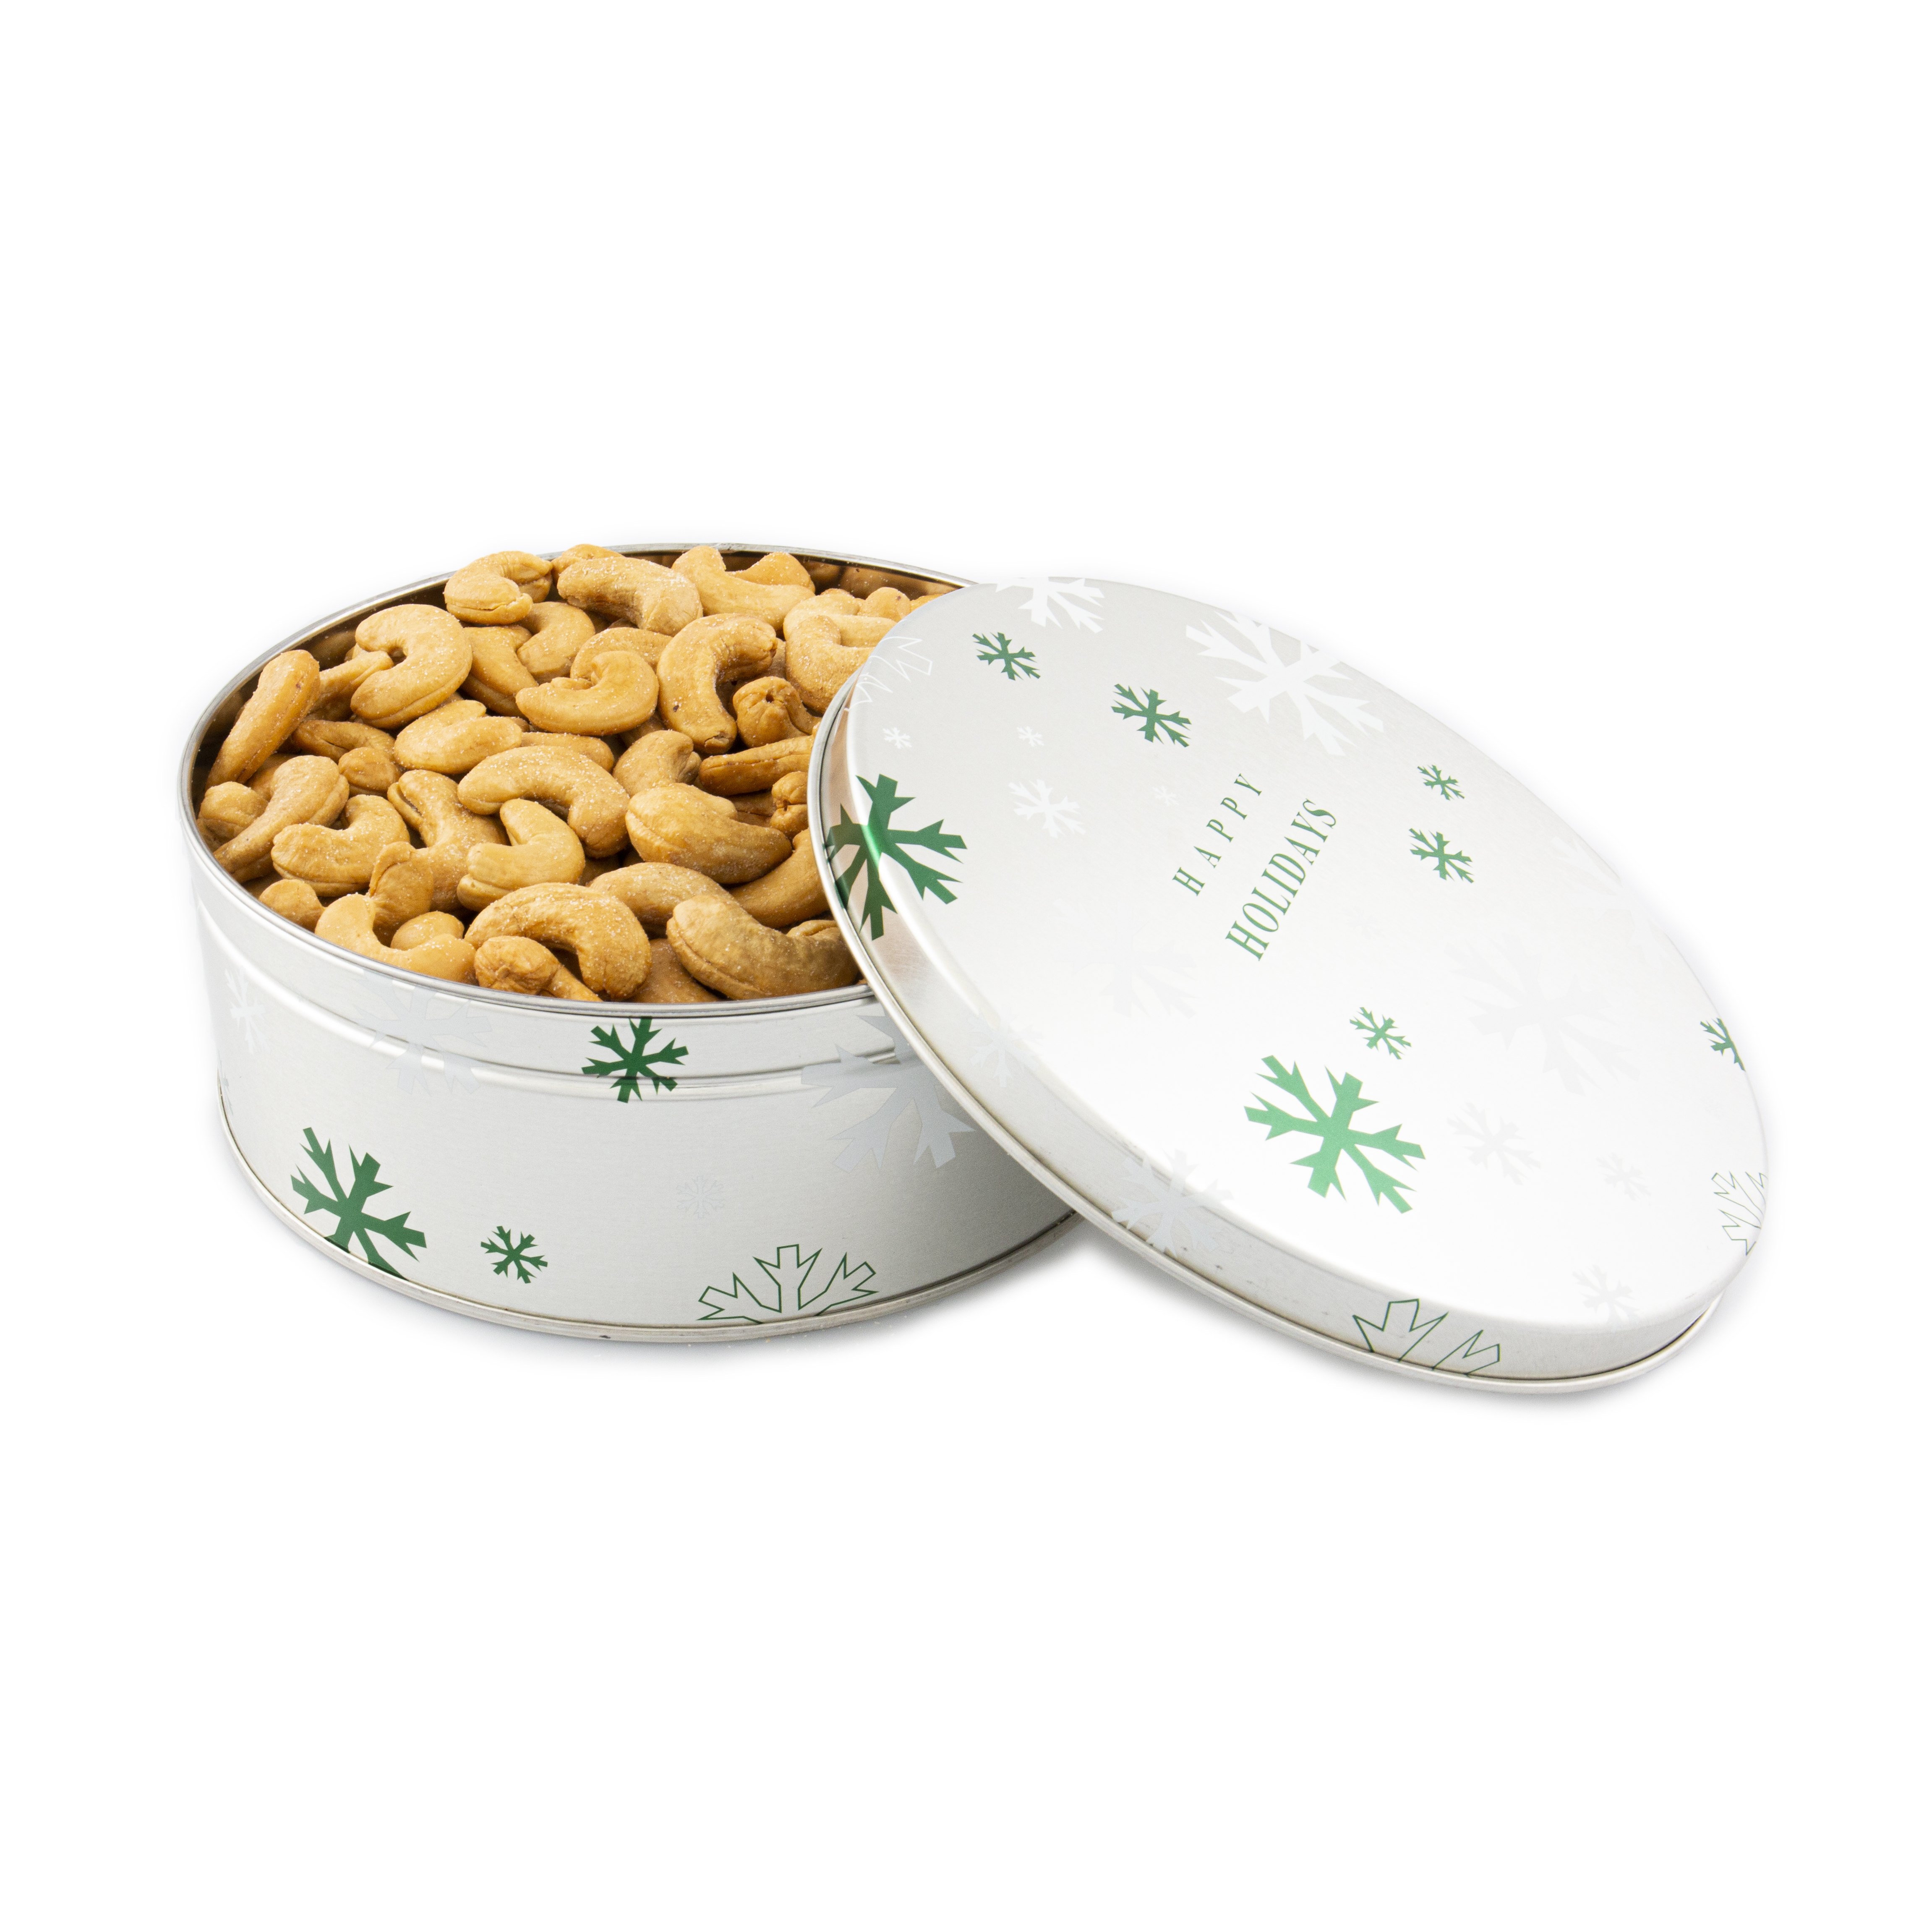 1 lb. Colossal Cashews Happy Holidays Tin